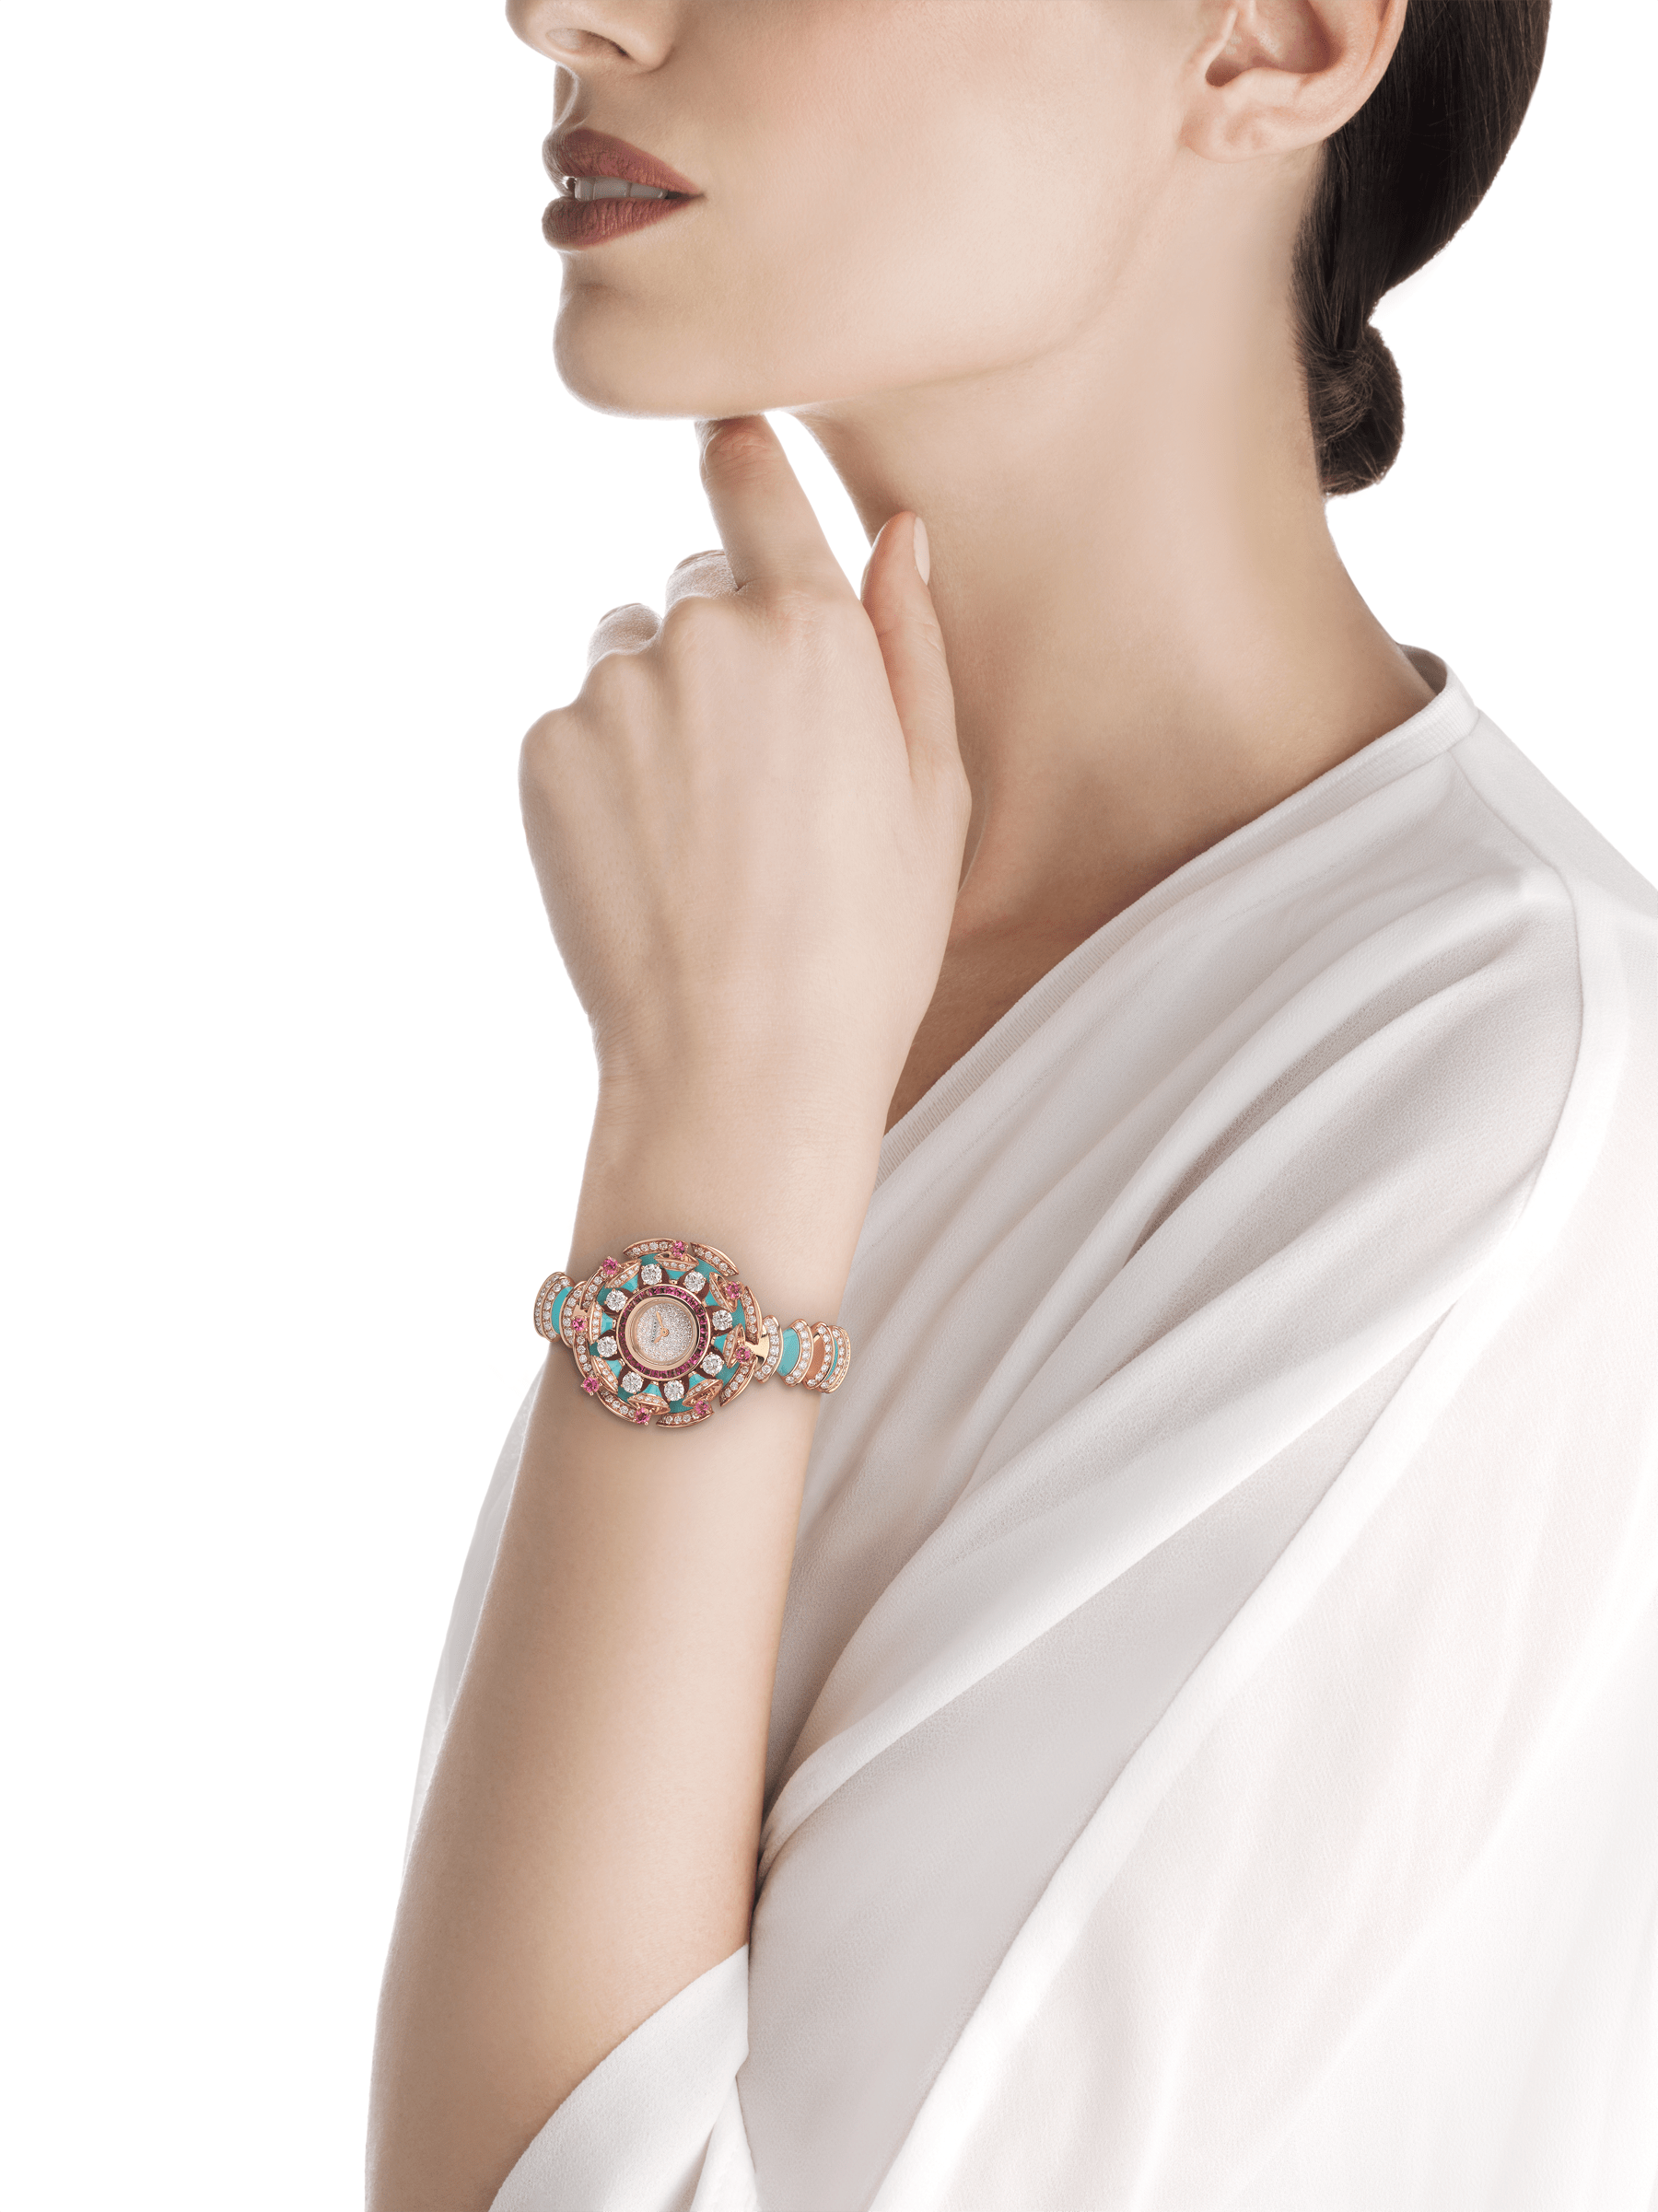 DIVAS' DREAM watch with 18 kt rose gold case set with brilliant-cut diamonds, pink tourmalines and turquoises, snow pavé dial and 18 kt rose gold bracelet set with brilliant-cut diamonds and turquoises 102079 image 3